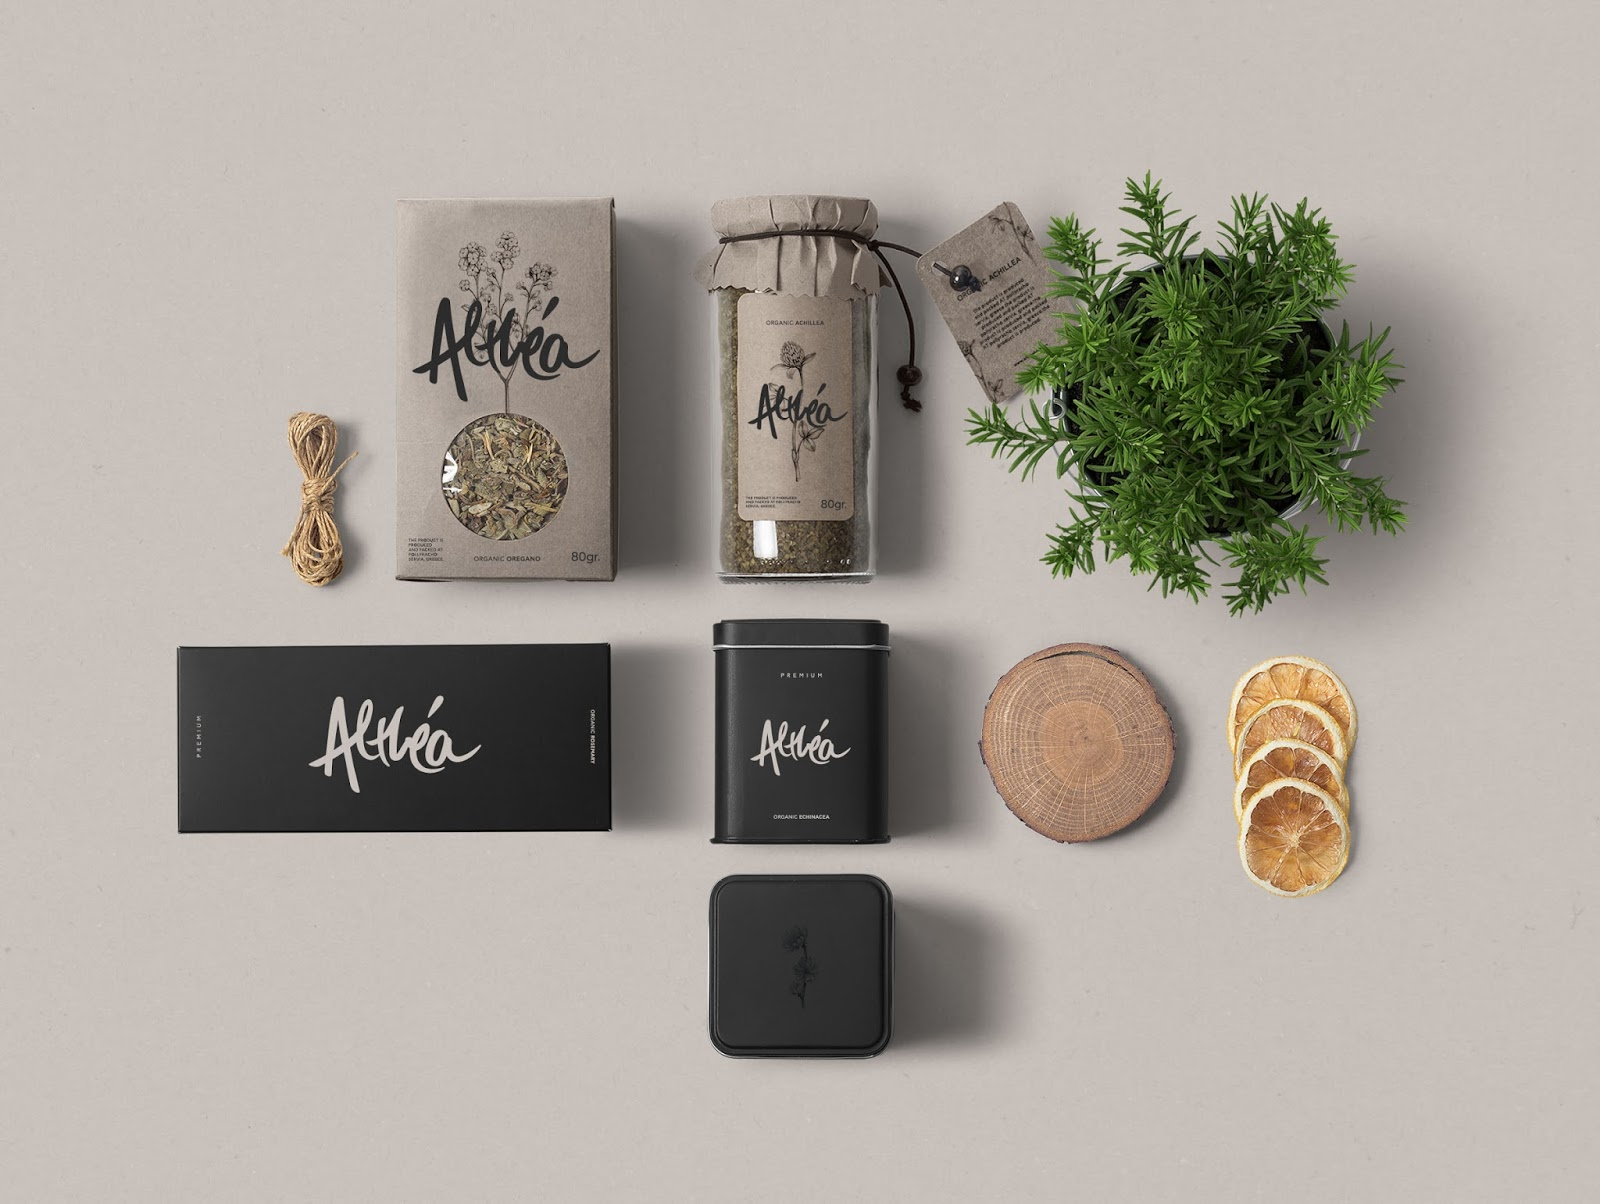 brand and packaging Brand new, is a division of underconsideration, displaying opinions, and focusing solely, on corporate and brand identity work more underconsideration is a graphic design firm generating its own projects, initiatives, and content while taking on limited client work.